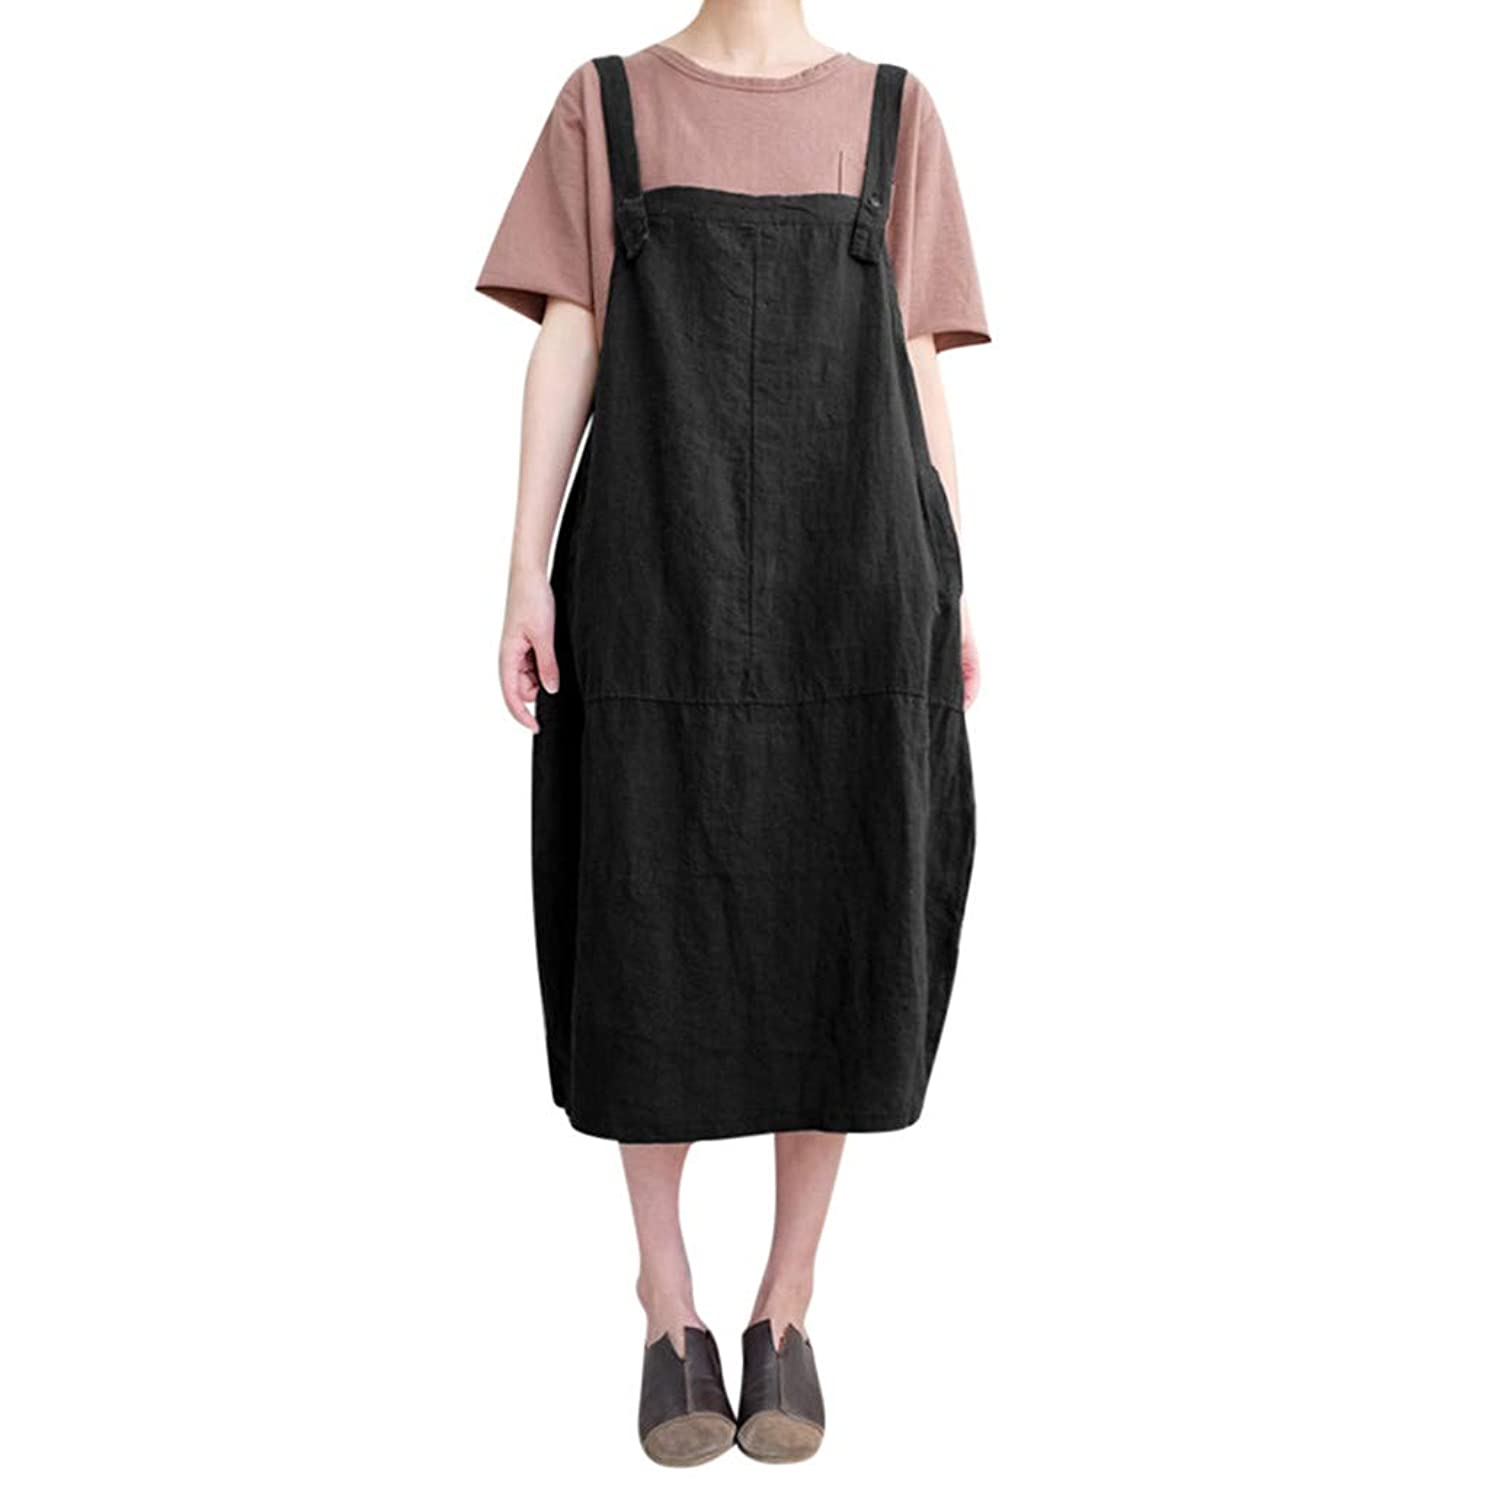 iPOGP Dress Women Casual Cotton and Linen Loose College Style Sleeveless Solid Color Spaghetti Strap Dress Fashion 2019